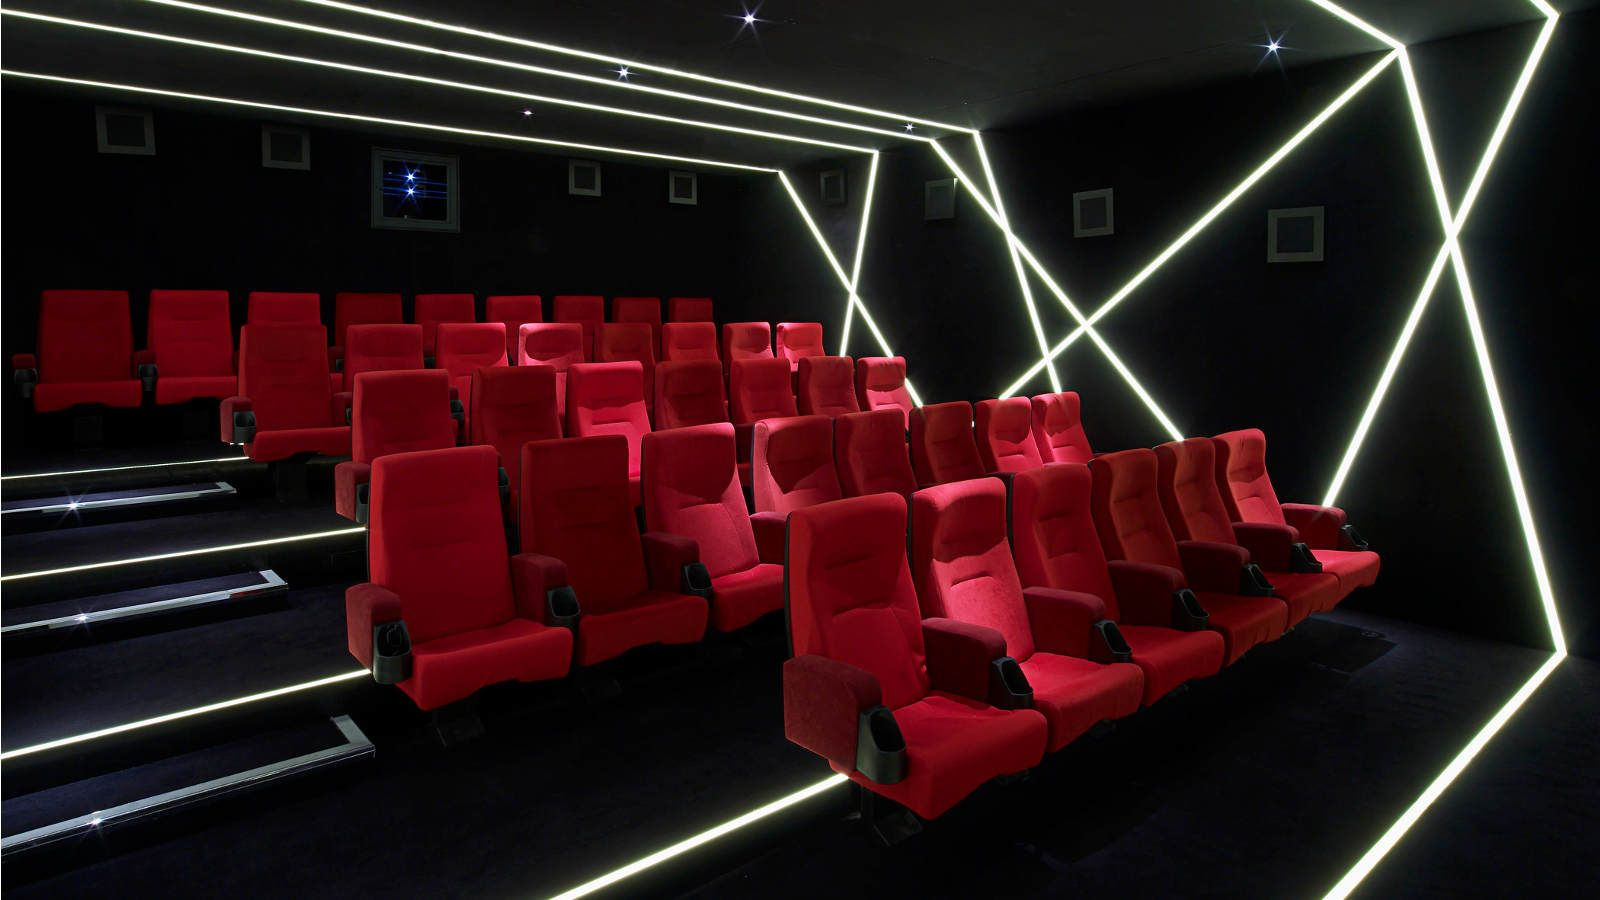 3D cinema screen